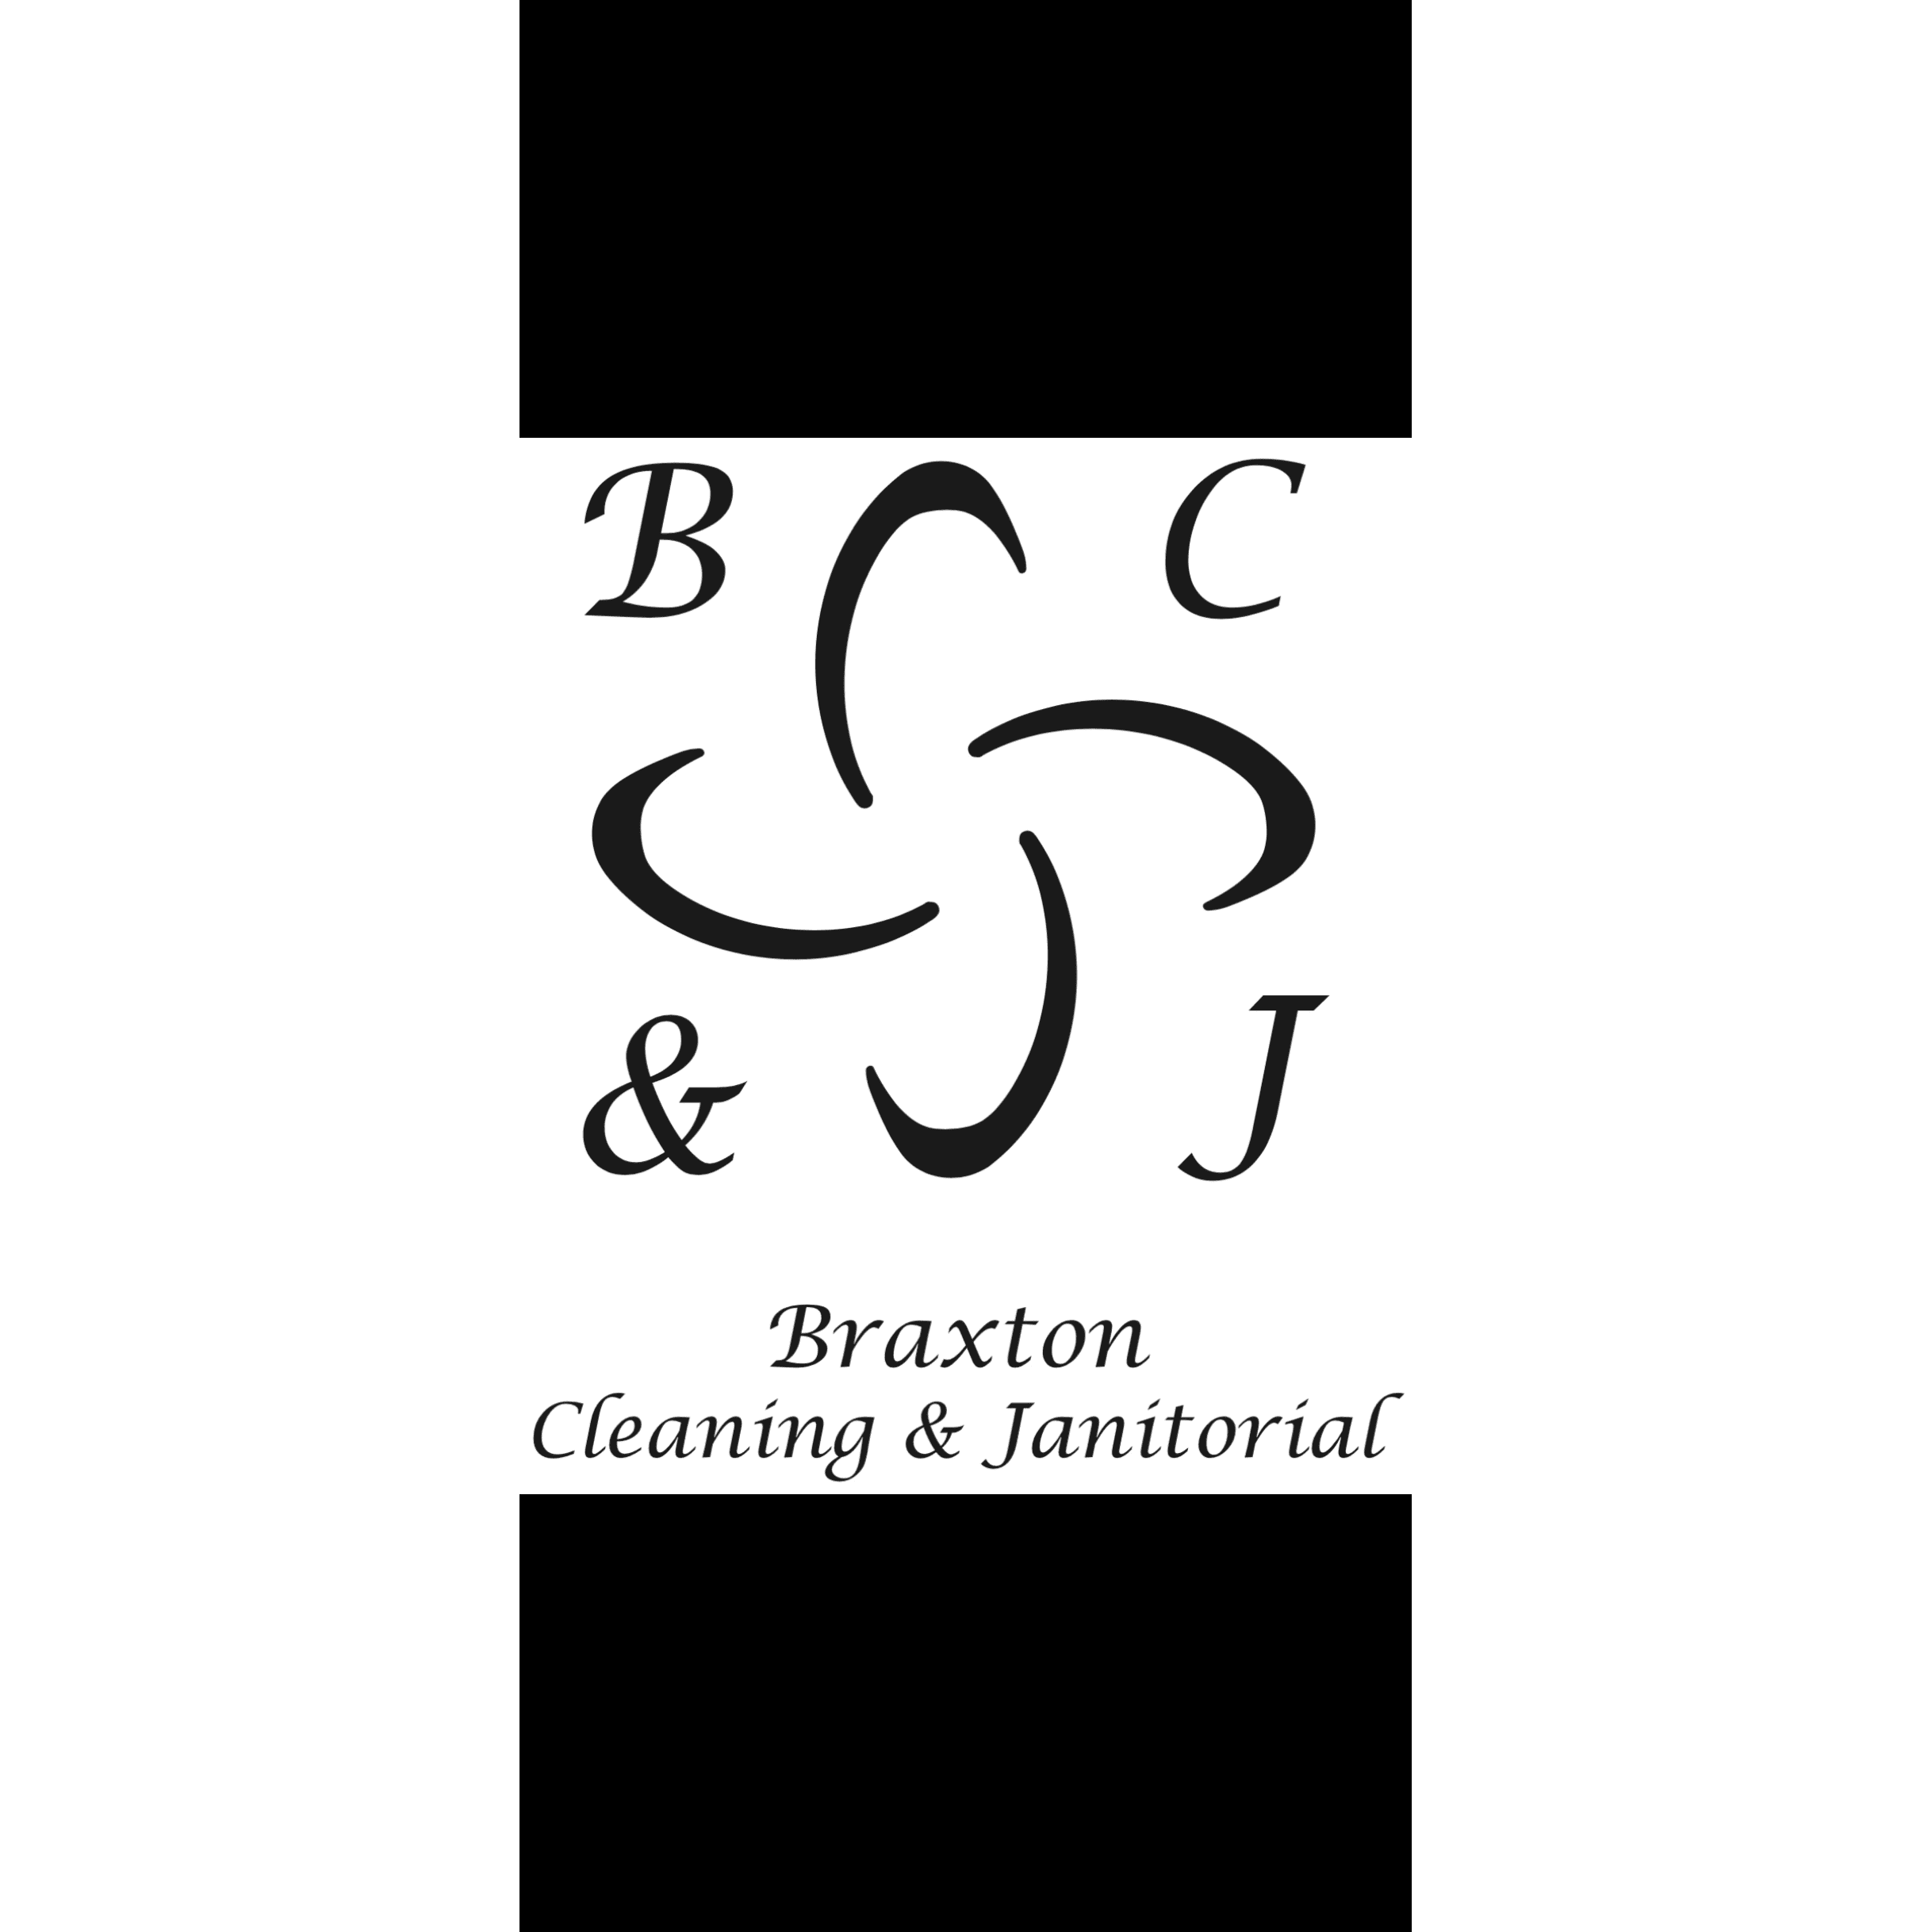 Braxton Cleaning & Janitorial image 1